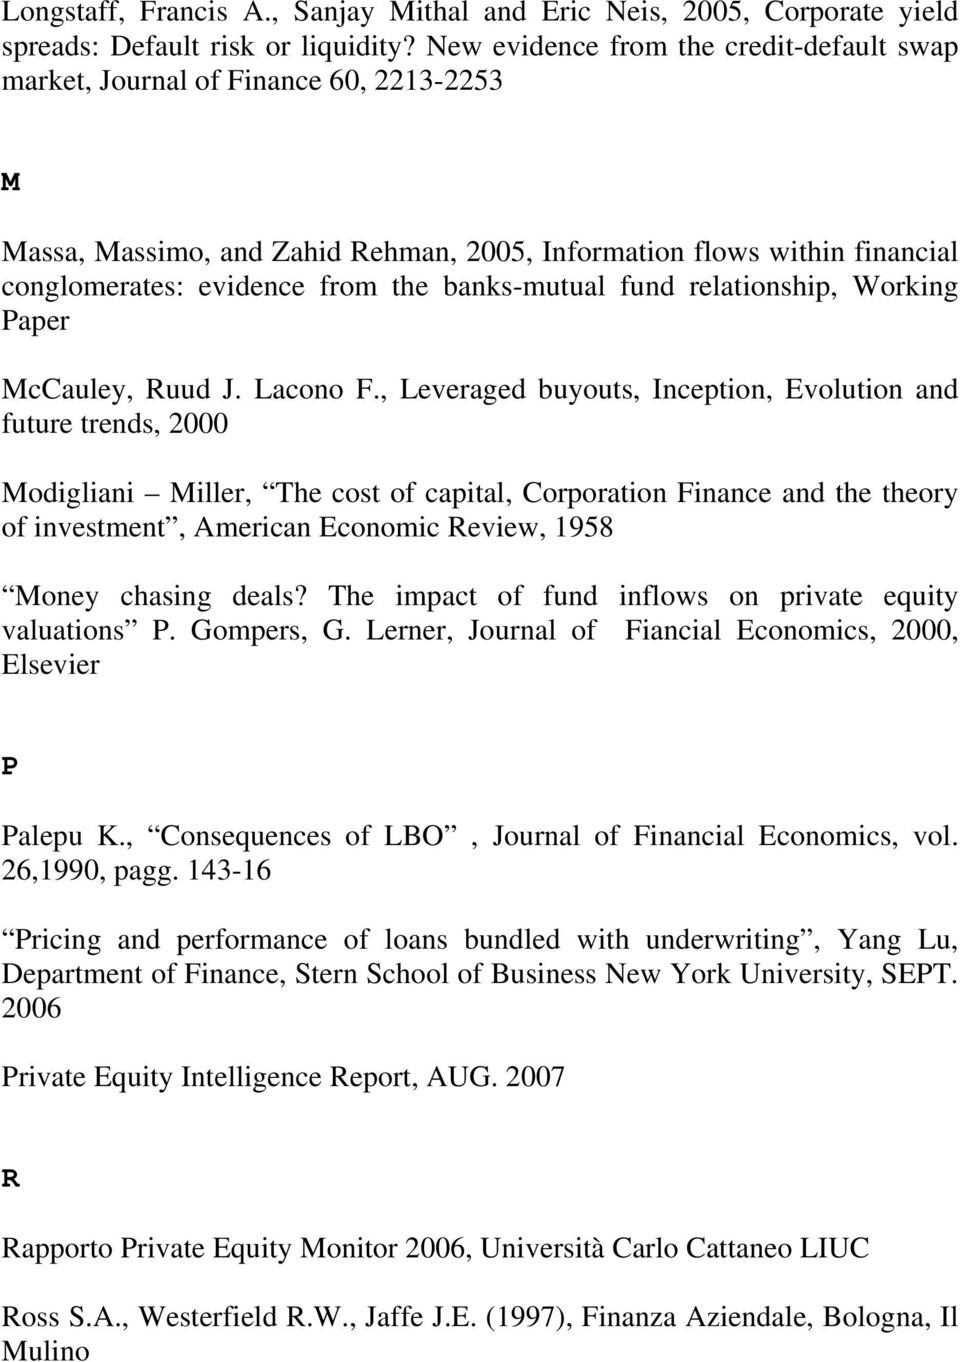 banks-mutual fund relationship, Working Paper McCauley, Ruud J. Lacono F.